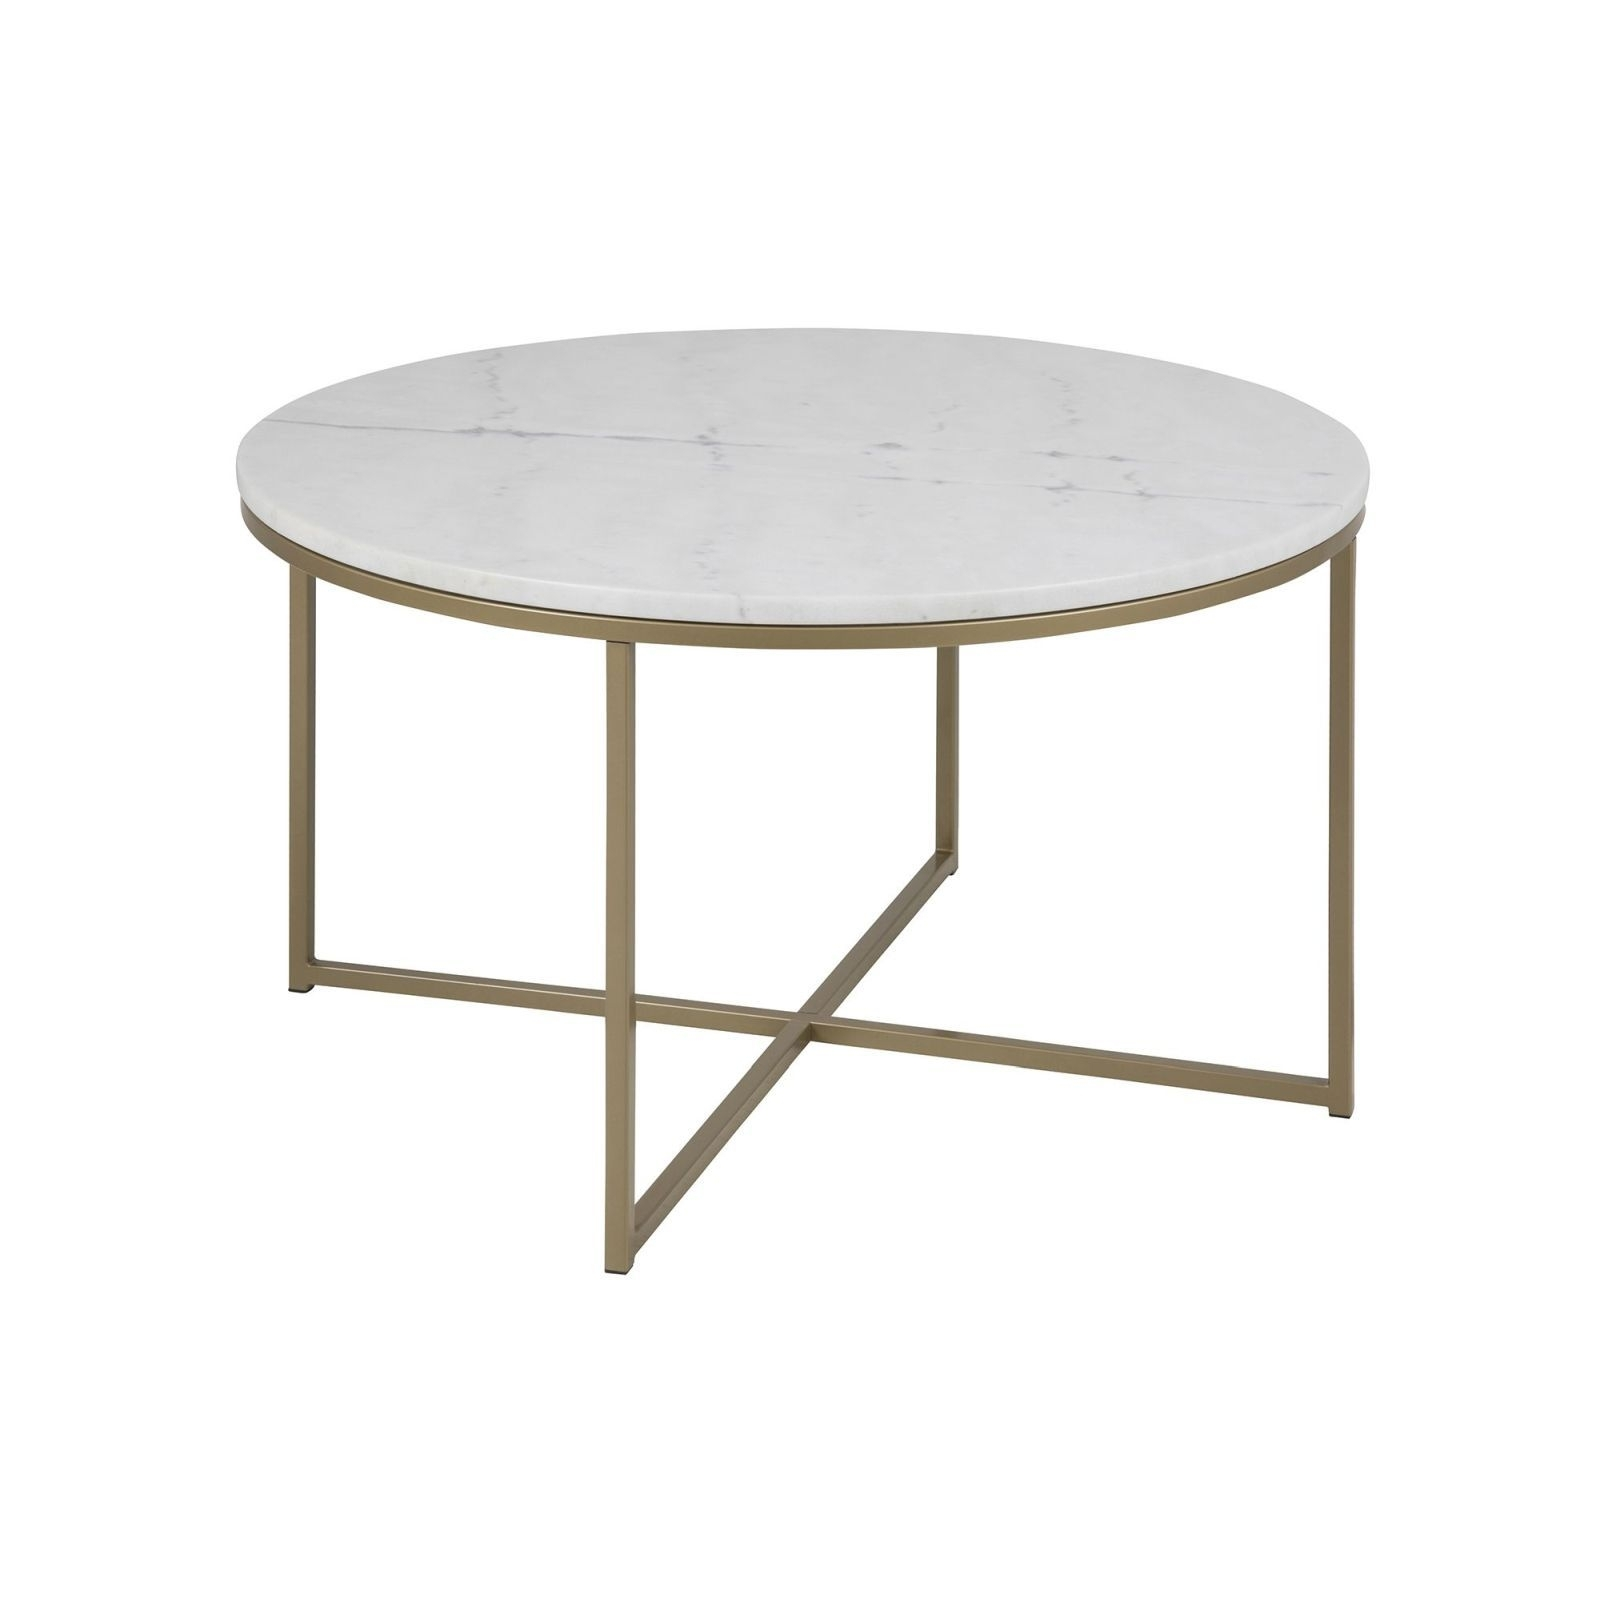 Cade Coffee Table Round (Brass) – Tables – Furniture – Furniture In Smart Round Marble Brass Coffee Tables (View 5 of 30)